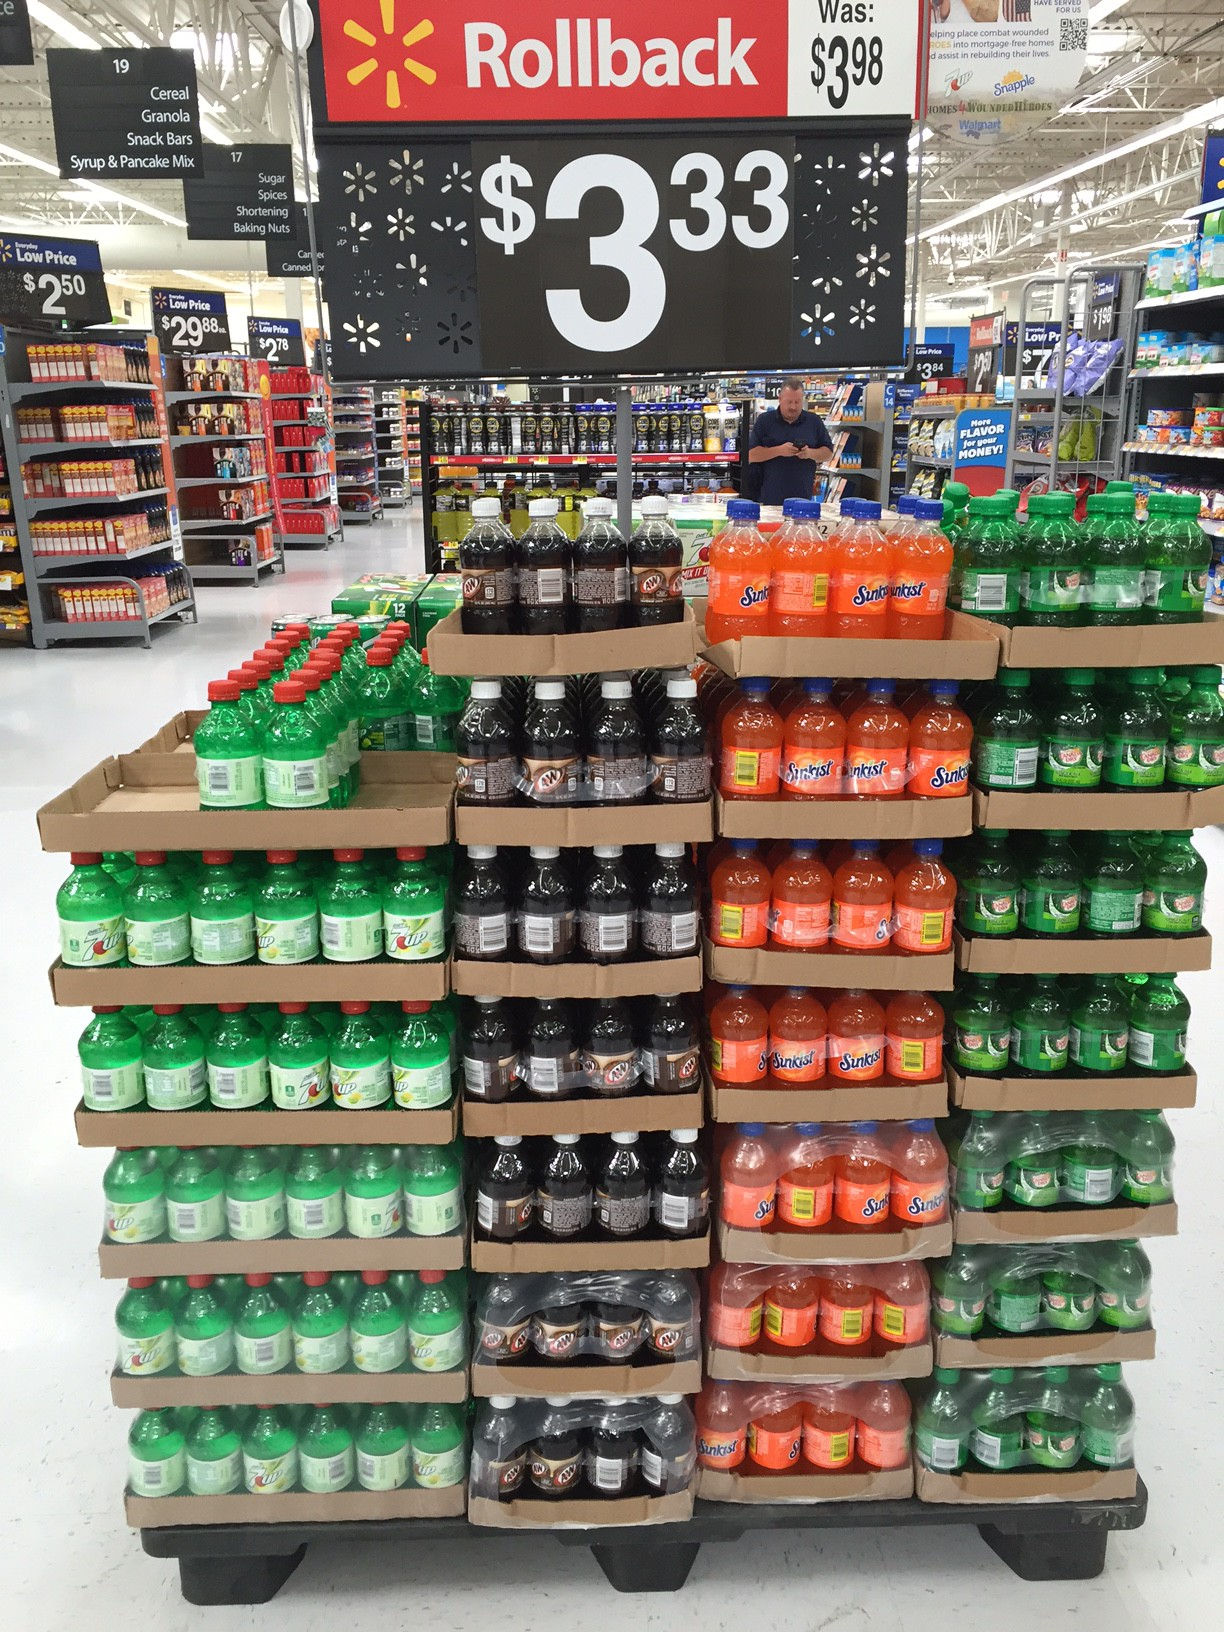 Soda display